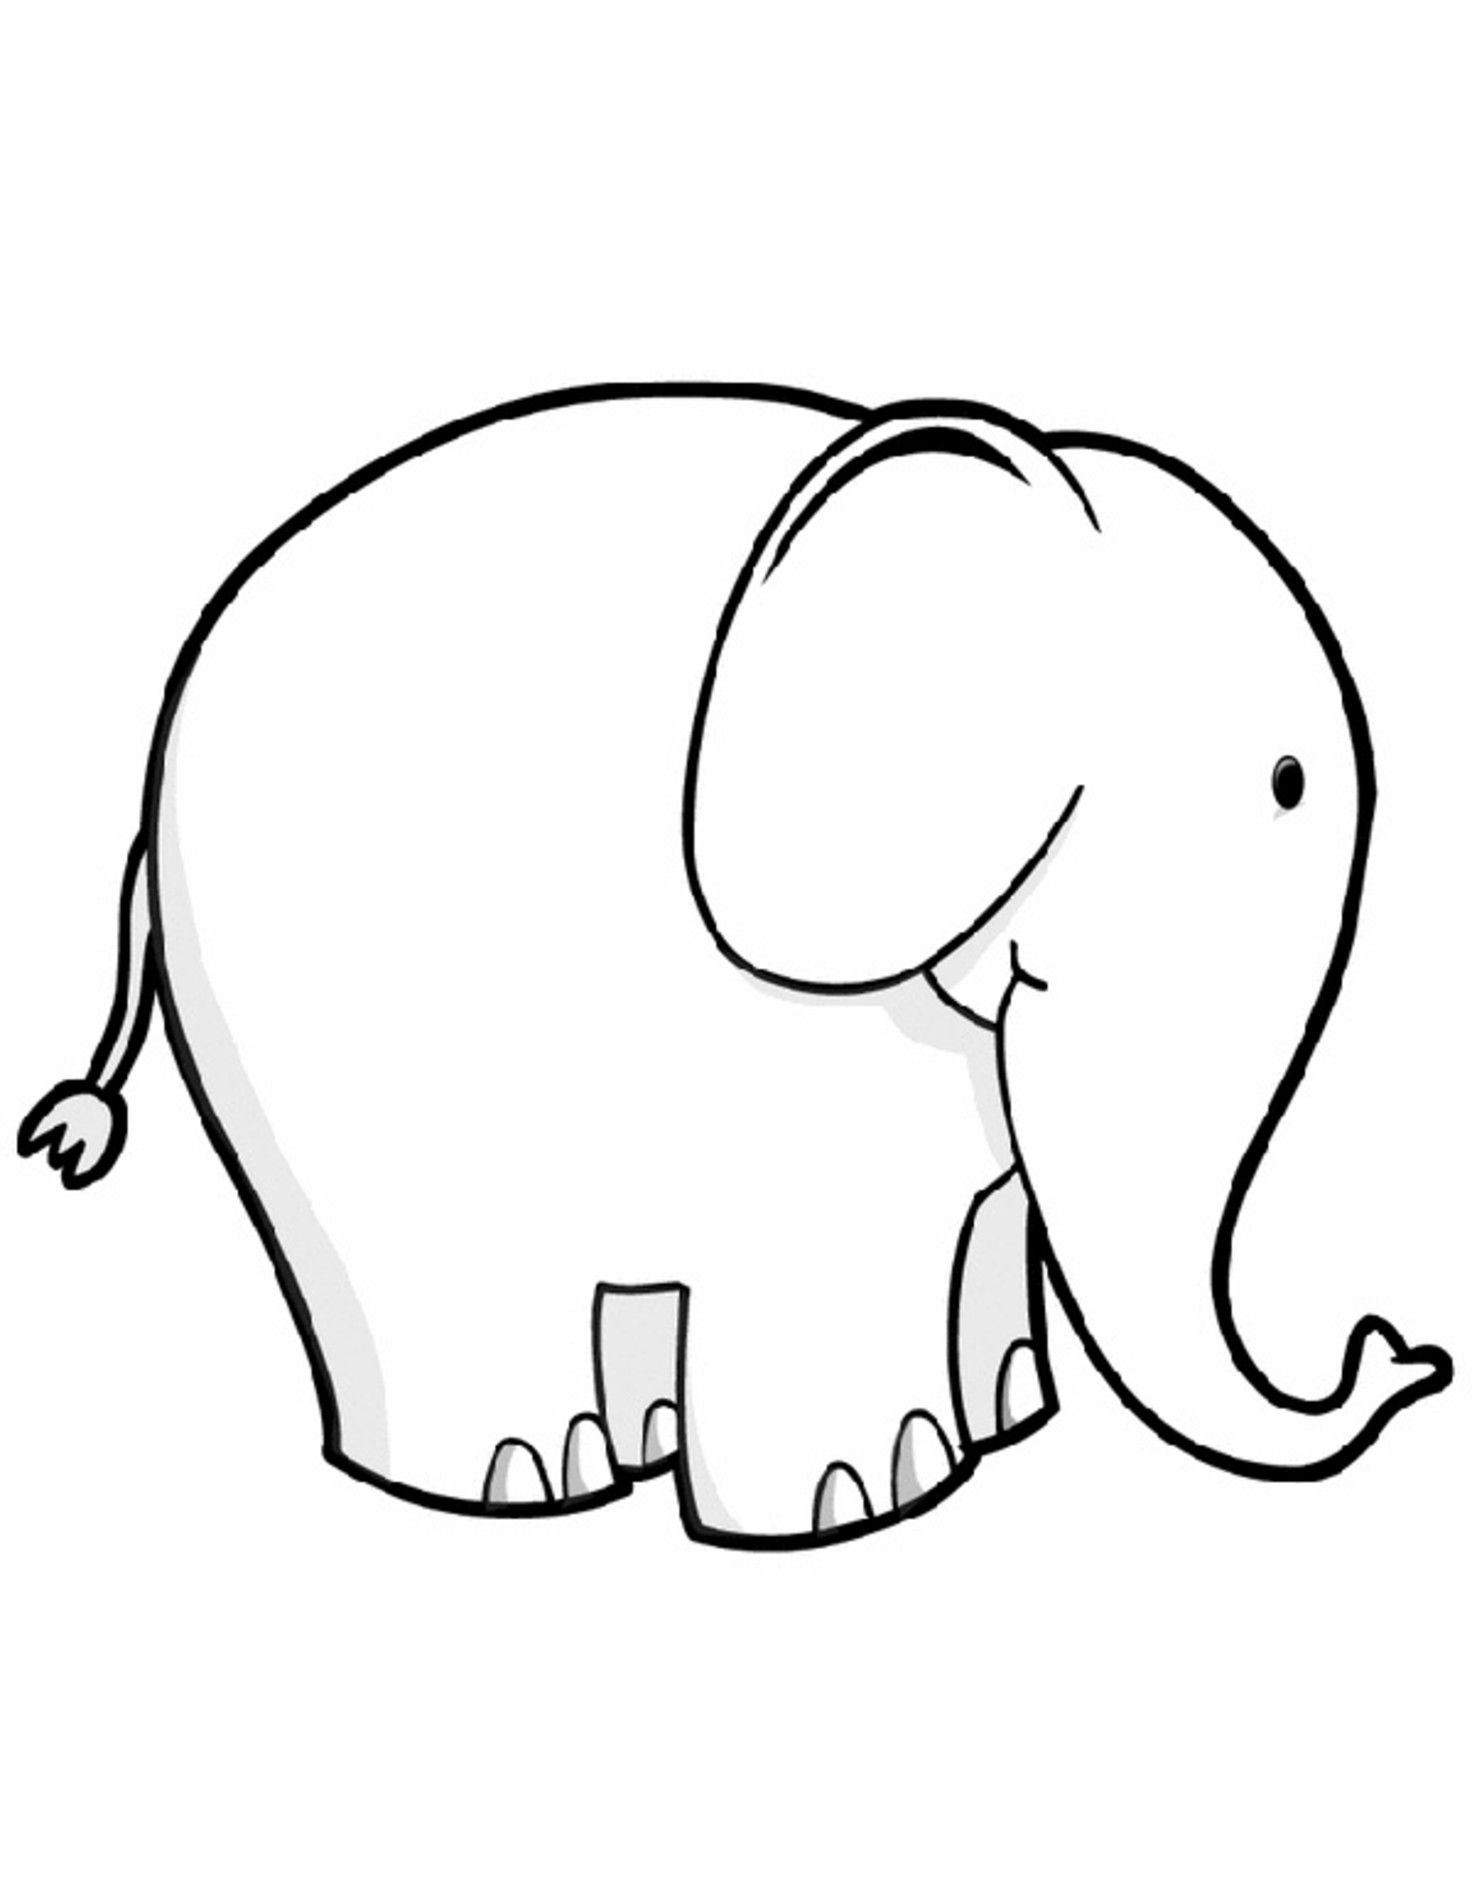 simple baby elephant coloring pages free easy to print elephant coloring pages tulamama pages elephant simple coloring baby